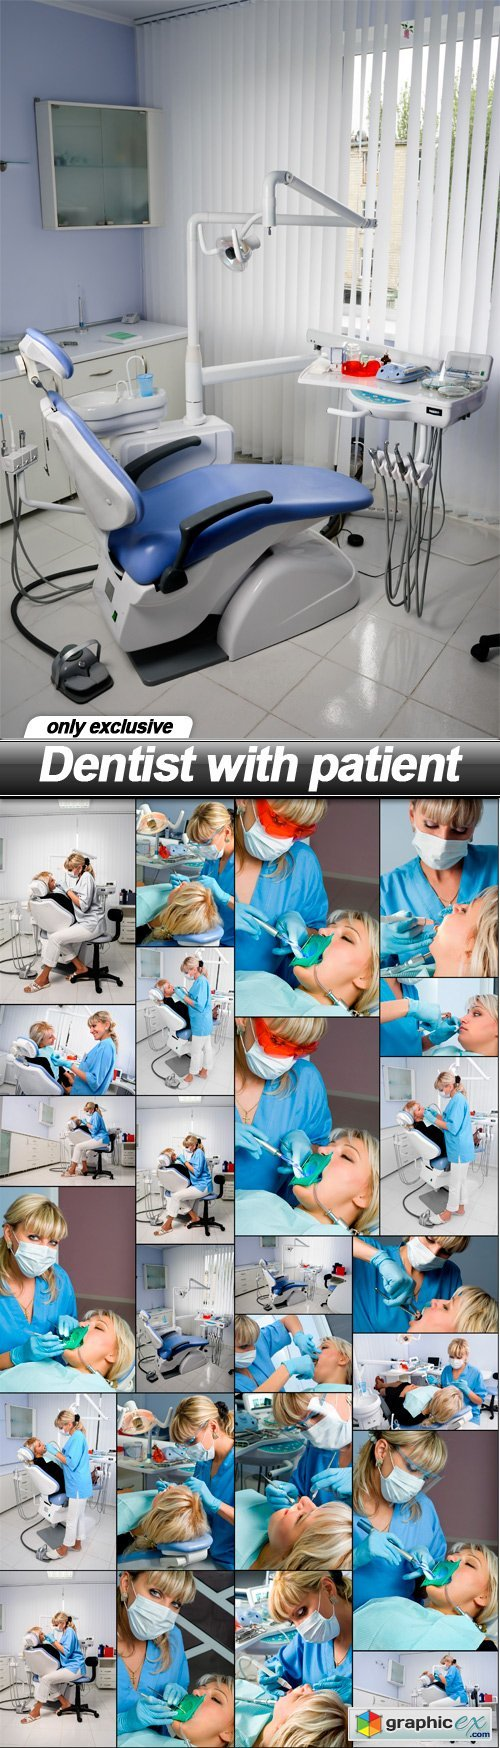 Dentist with patient - 25 UHQ JPEG